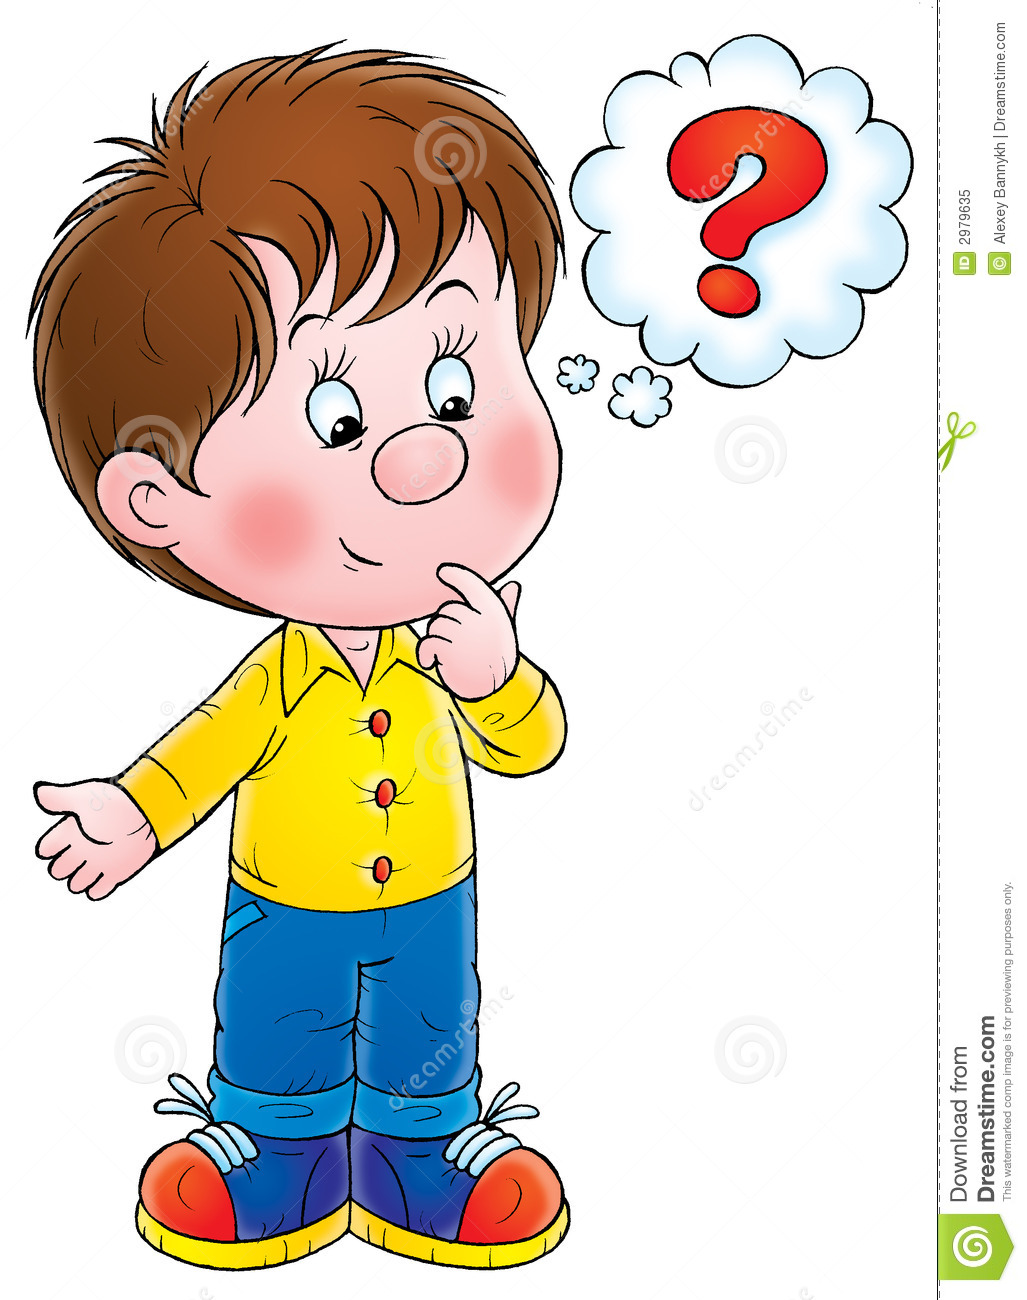 Question Mark clipart questions and answer Panda Images Art Mark Clip